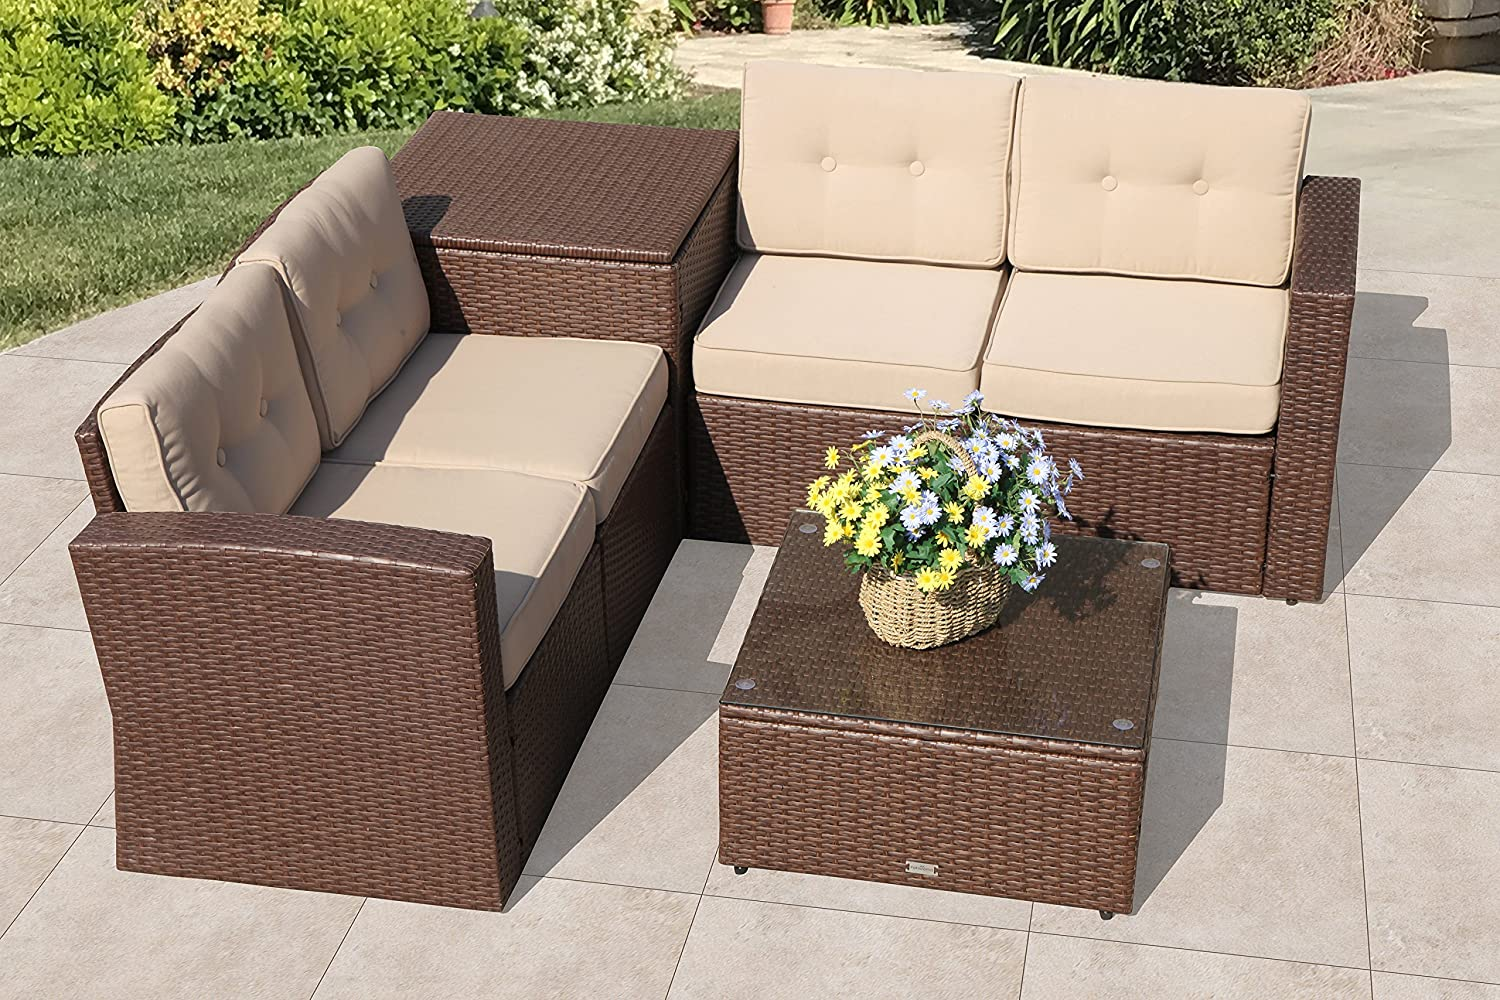 Super Patio Outdoor Furniture Set with Storage Box, 6 Piece All-Weather  Brown PE Wicker Sectional Sofa with Beige Cushions,Aluminum Frame